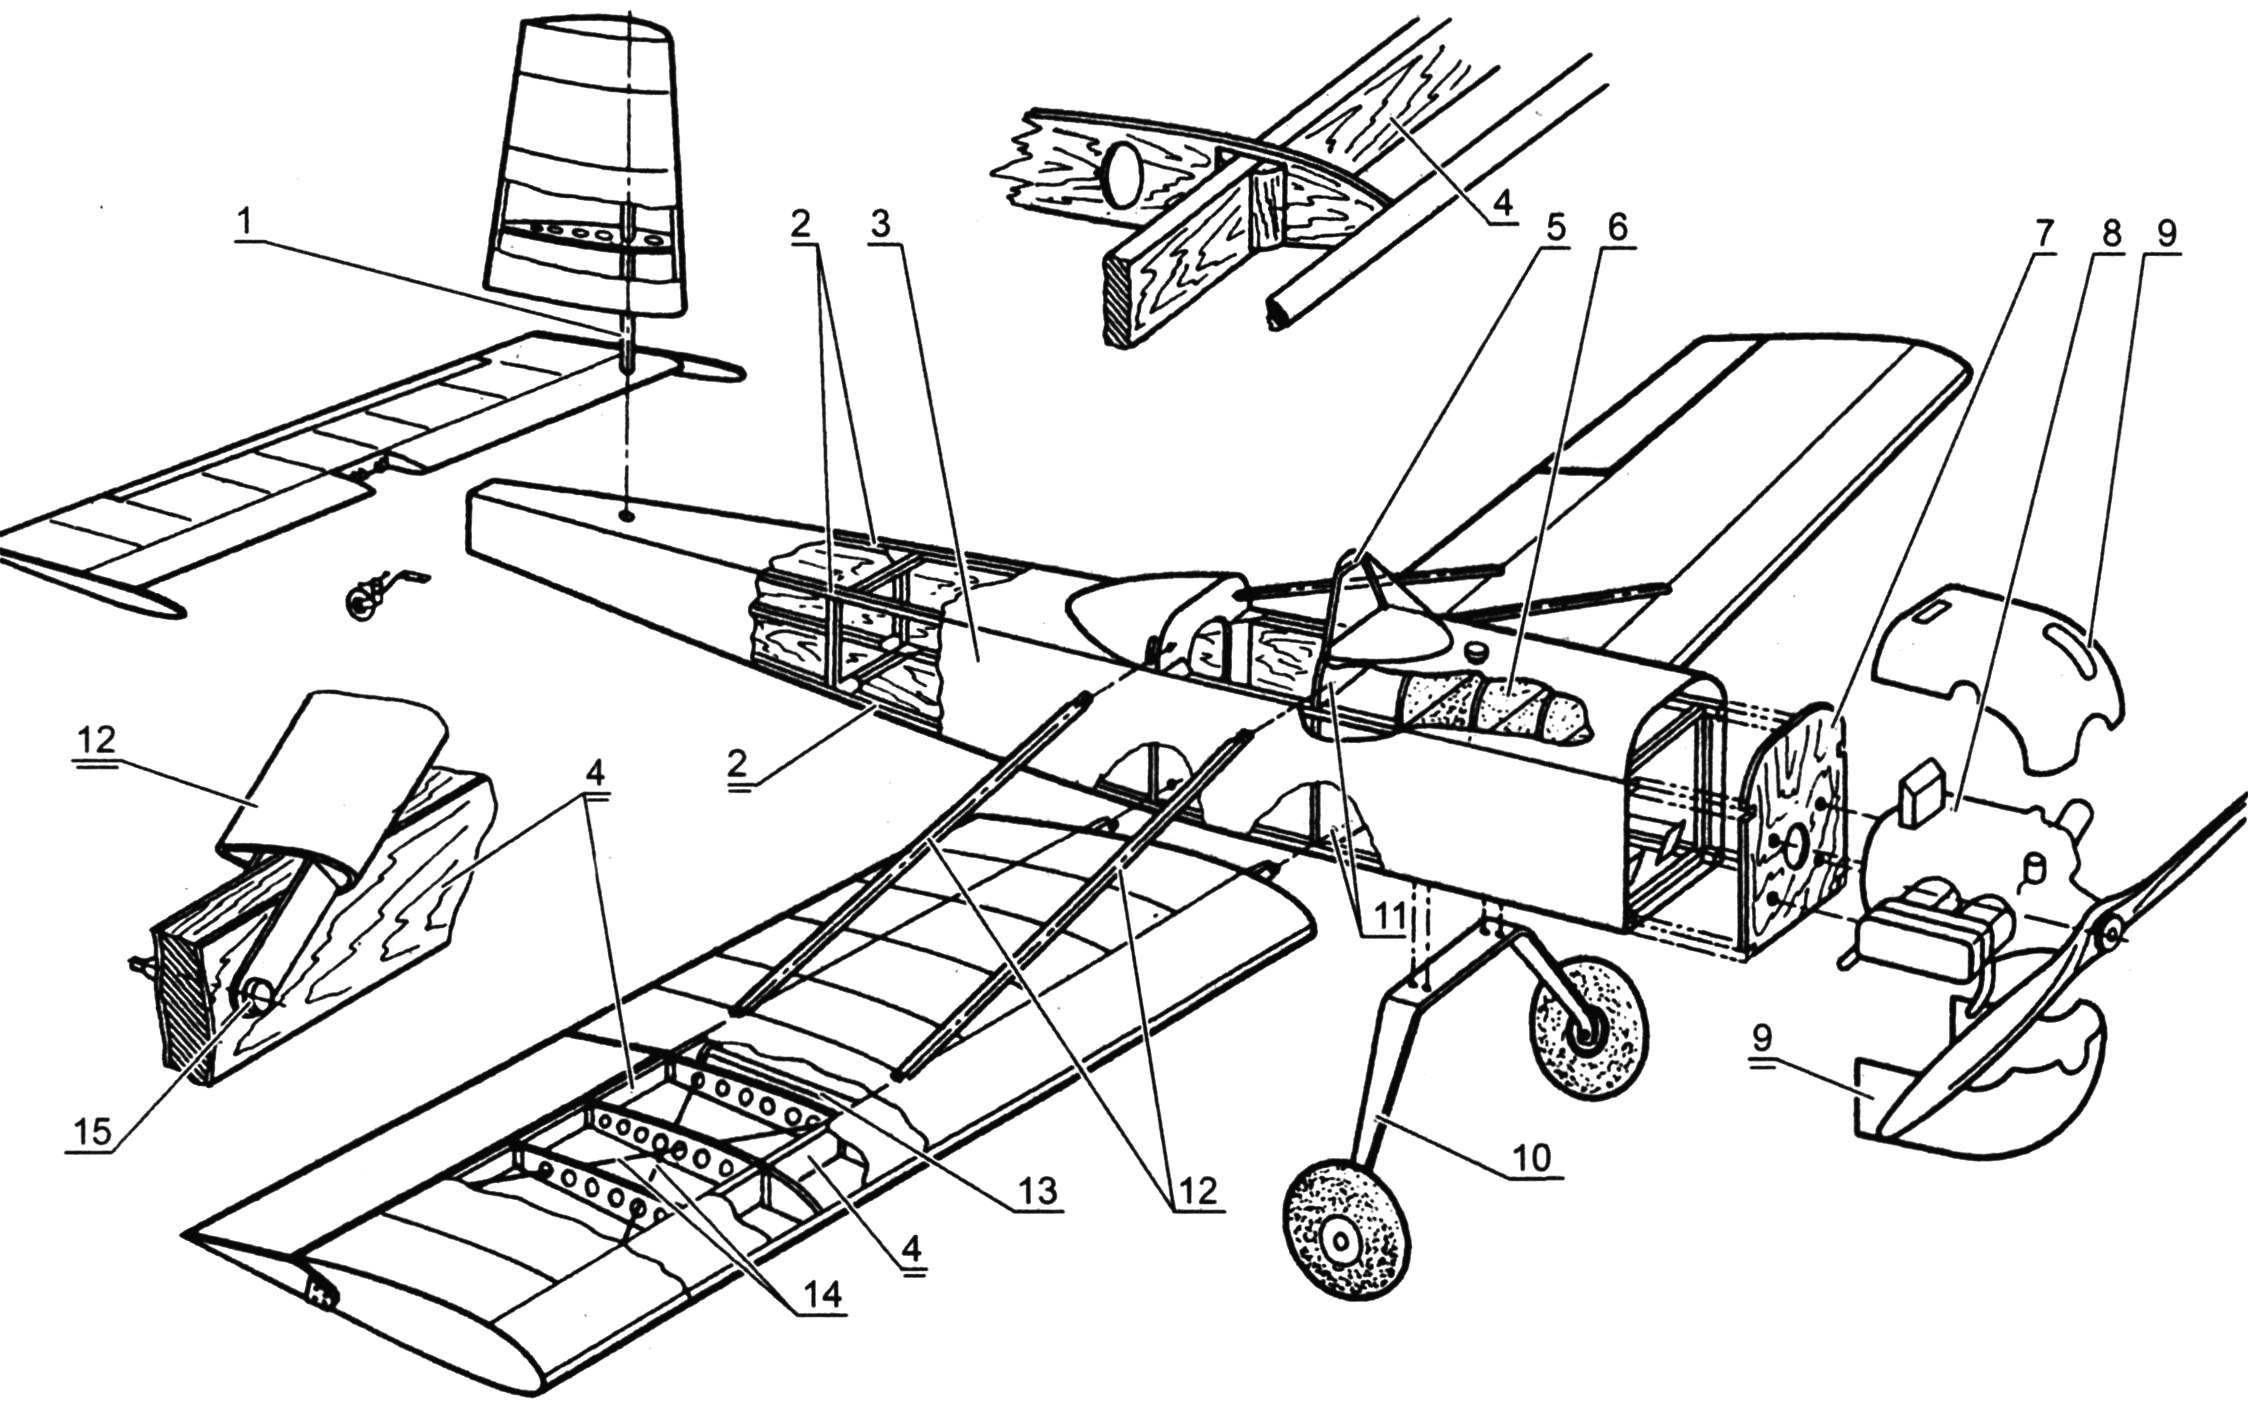 Design of aircraft